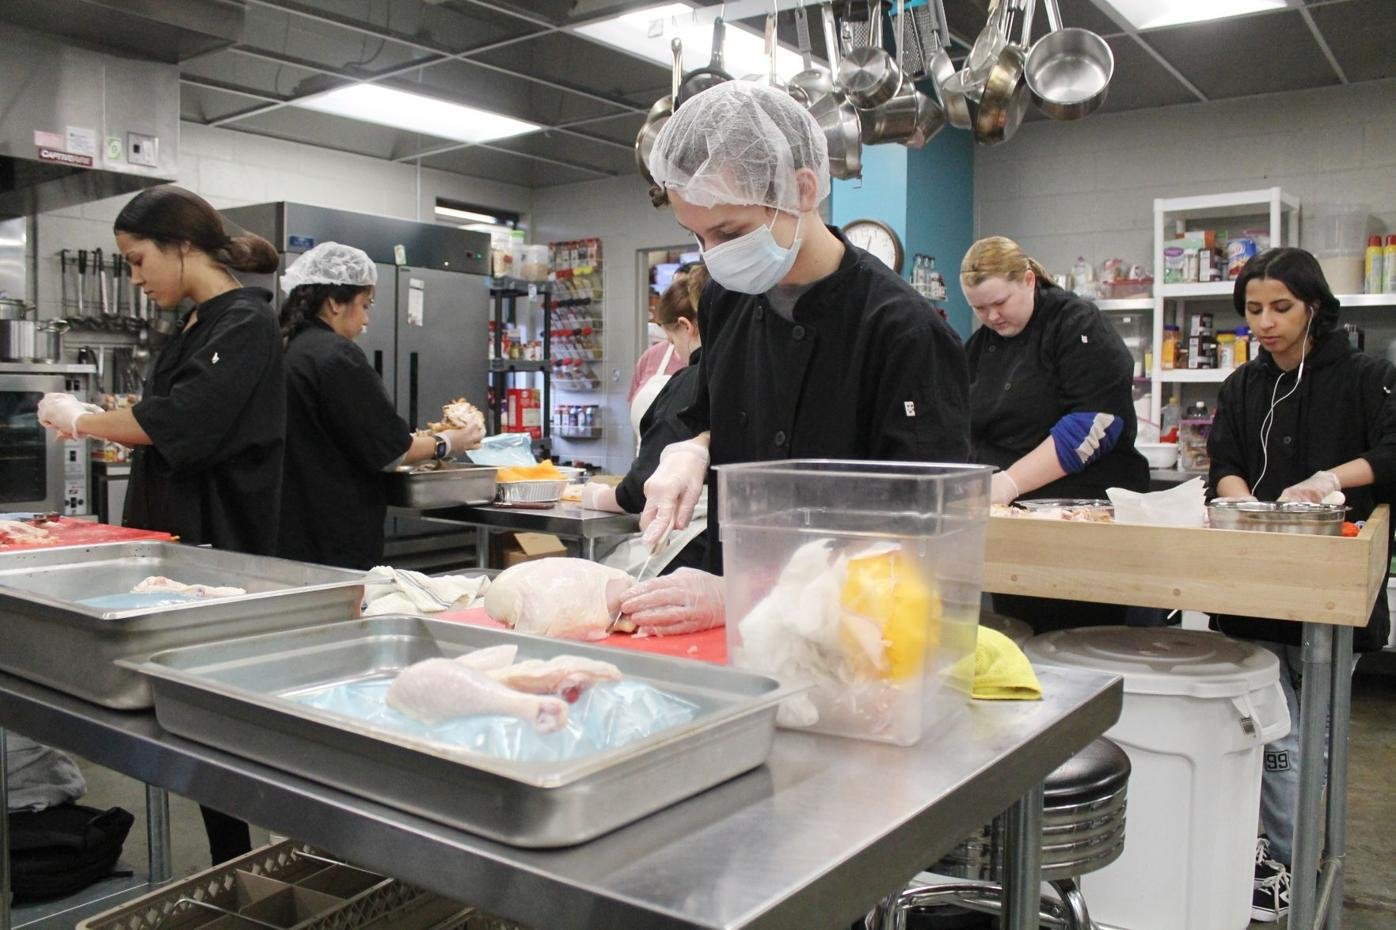 LCHS culinary arts takes first place